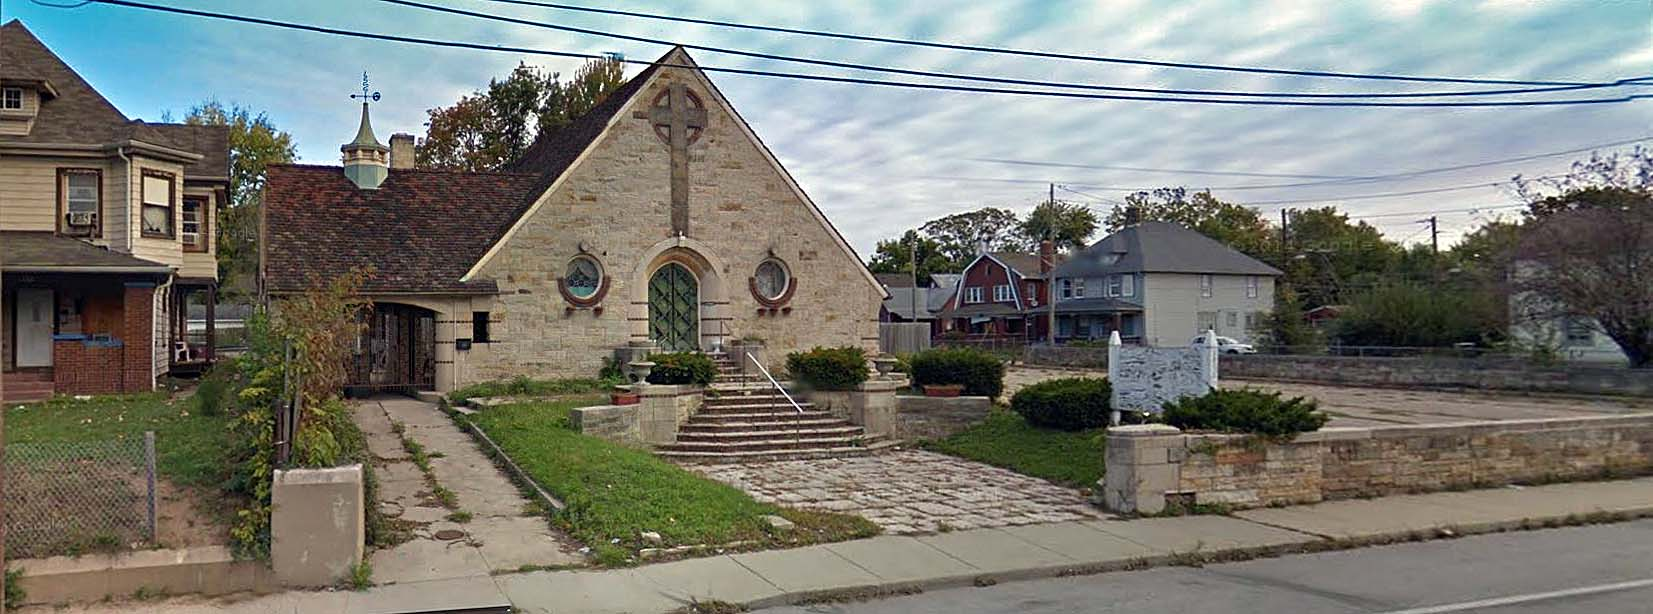 Indianapolis Then and Now REVISITED: Harry W. Moore Peace Chapel, 2050 E. Michigan Street